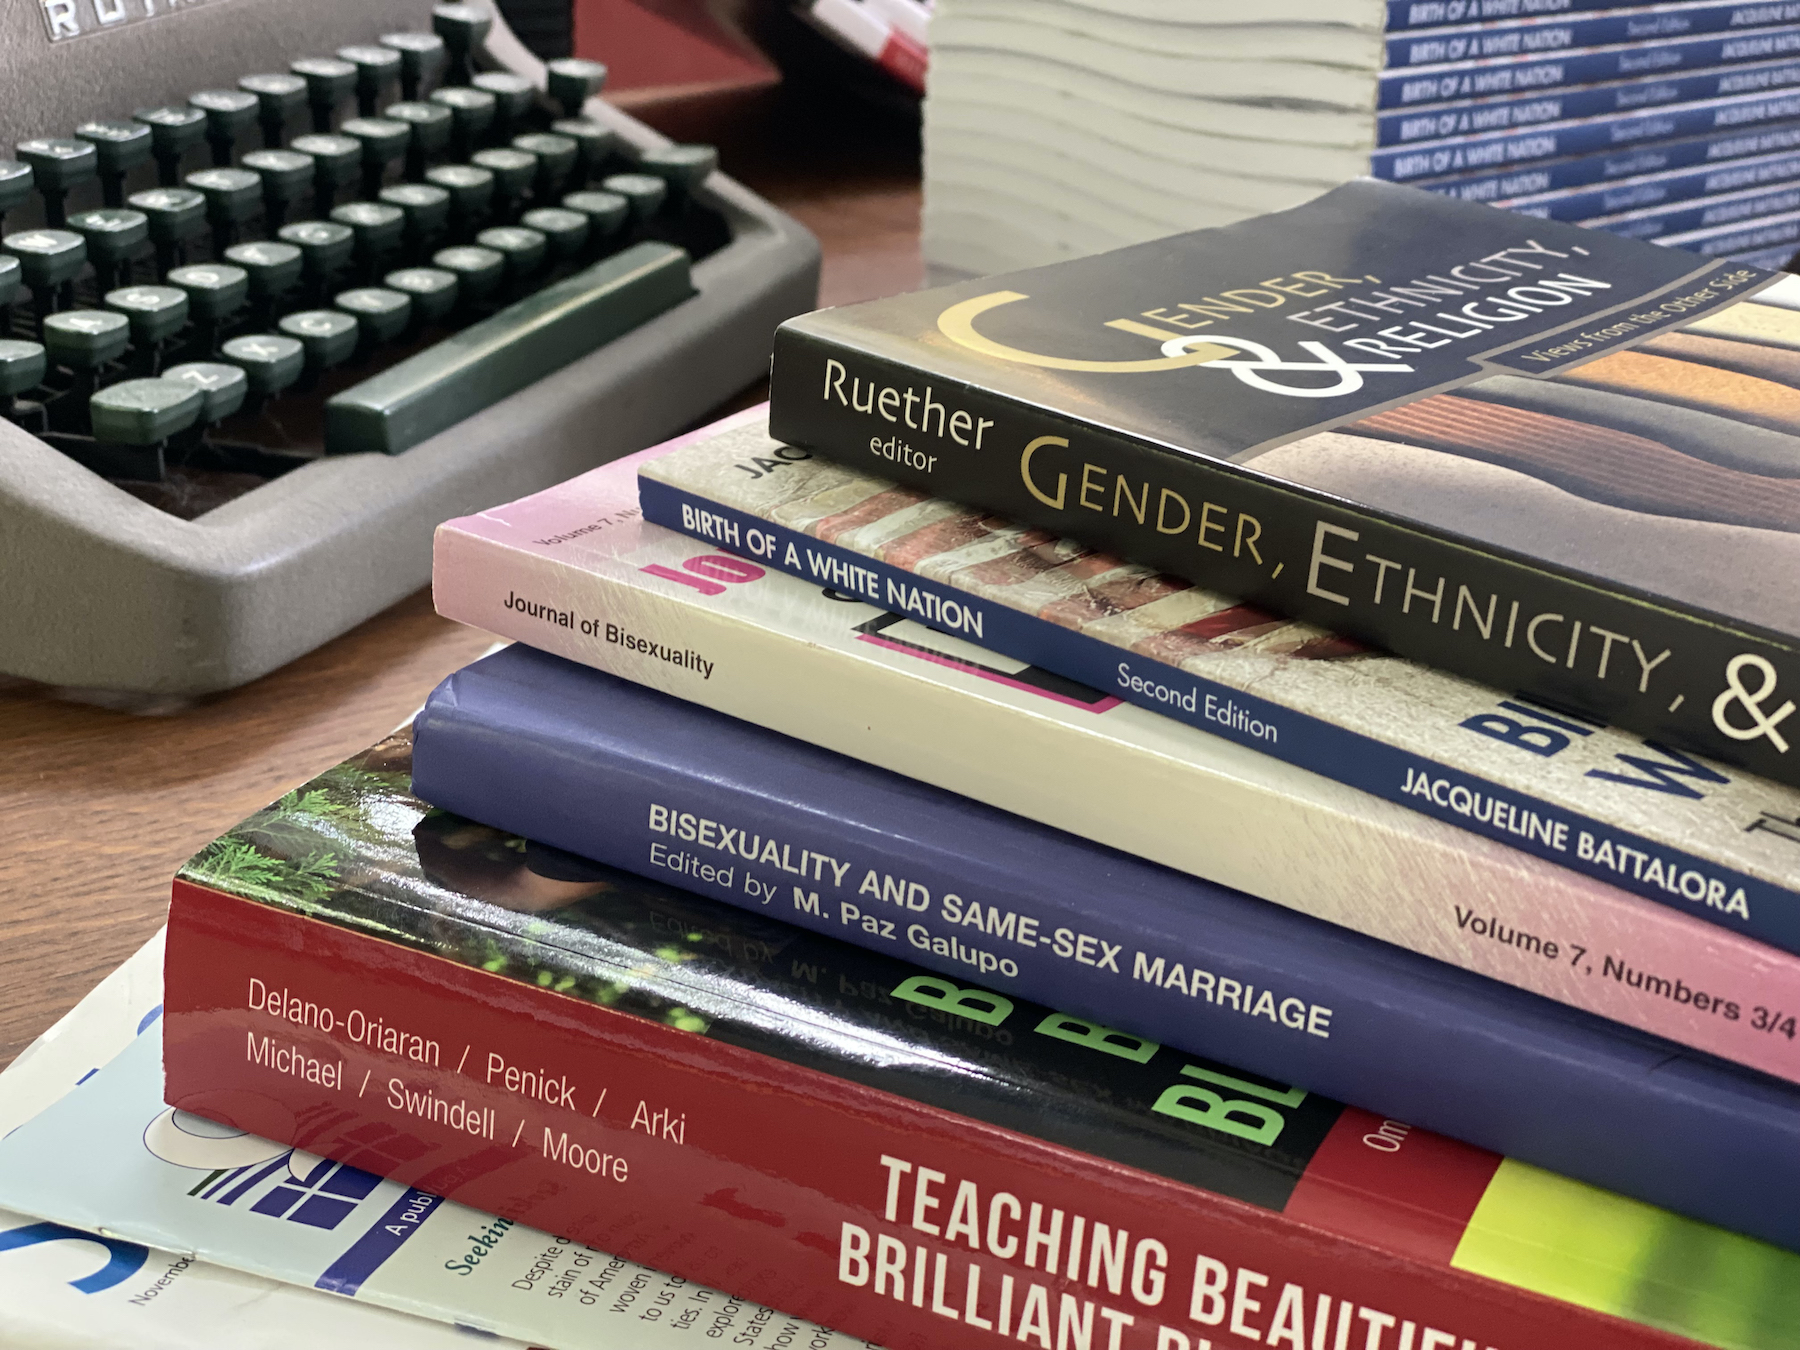 photo of stack of books reading: Ruether editor Gender, Ethnicity, & Religion, Birth of a White Nation, Journal of Bisexuality, Bisexuality and Same-Sex Marriage